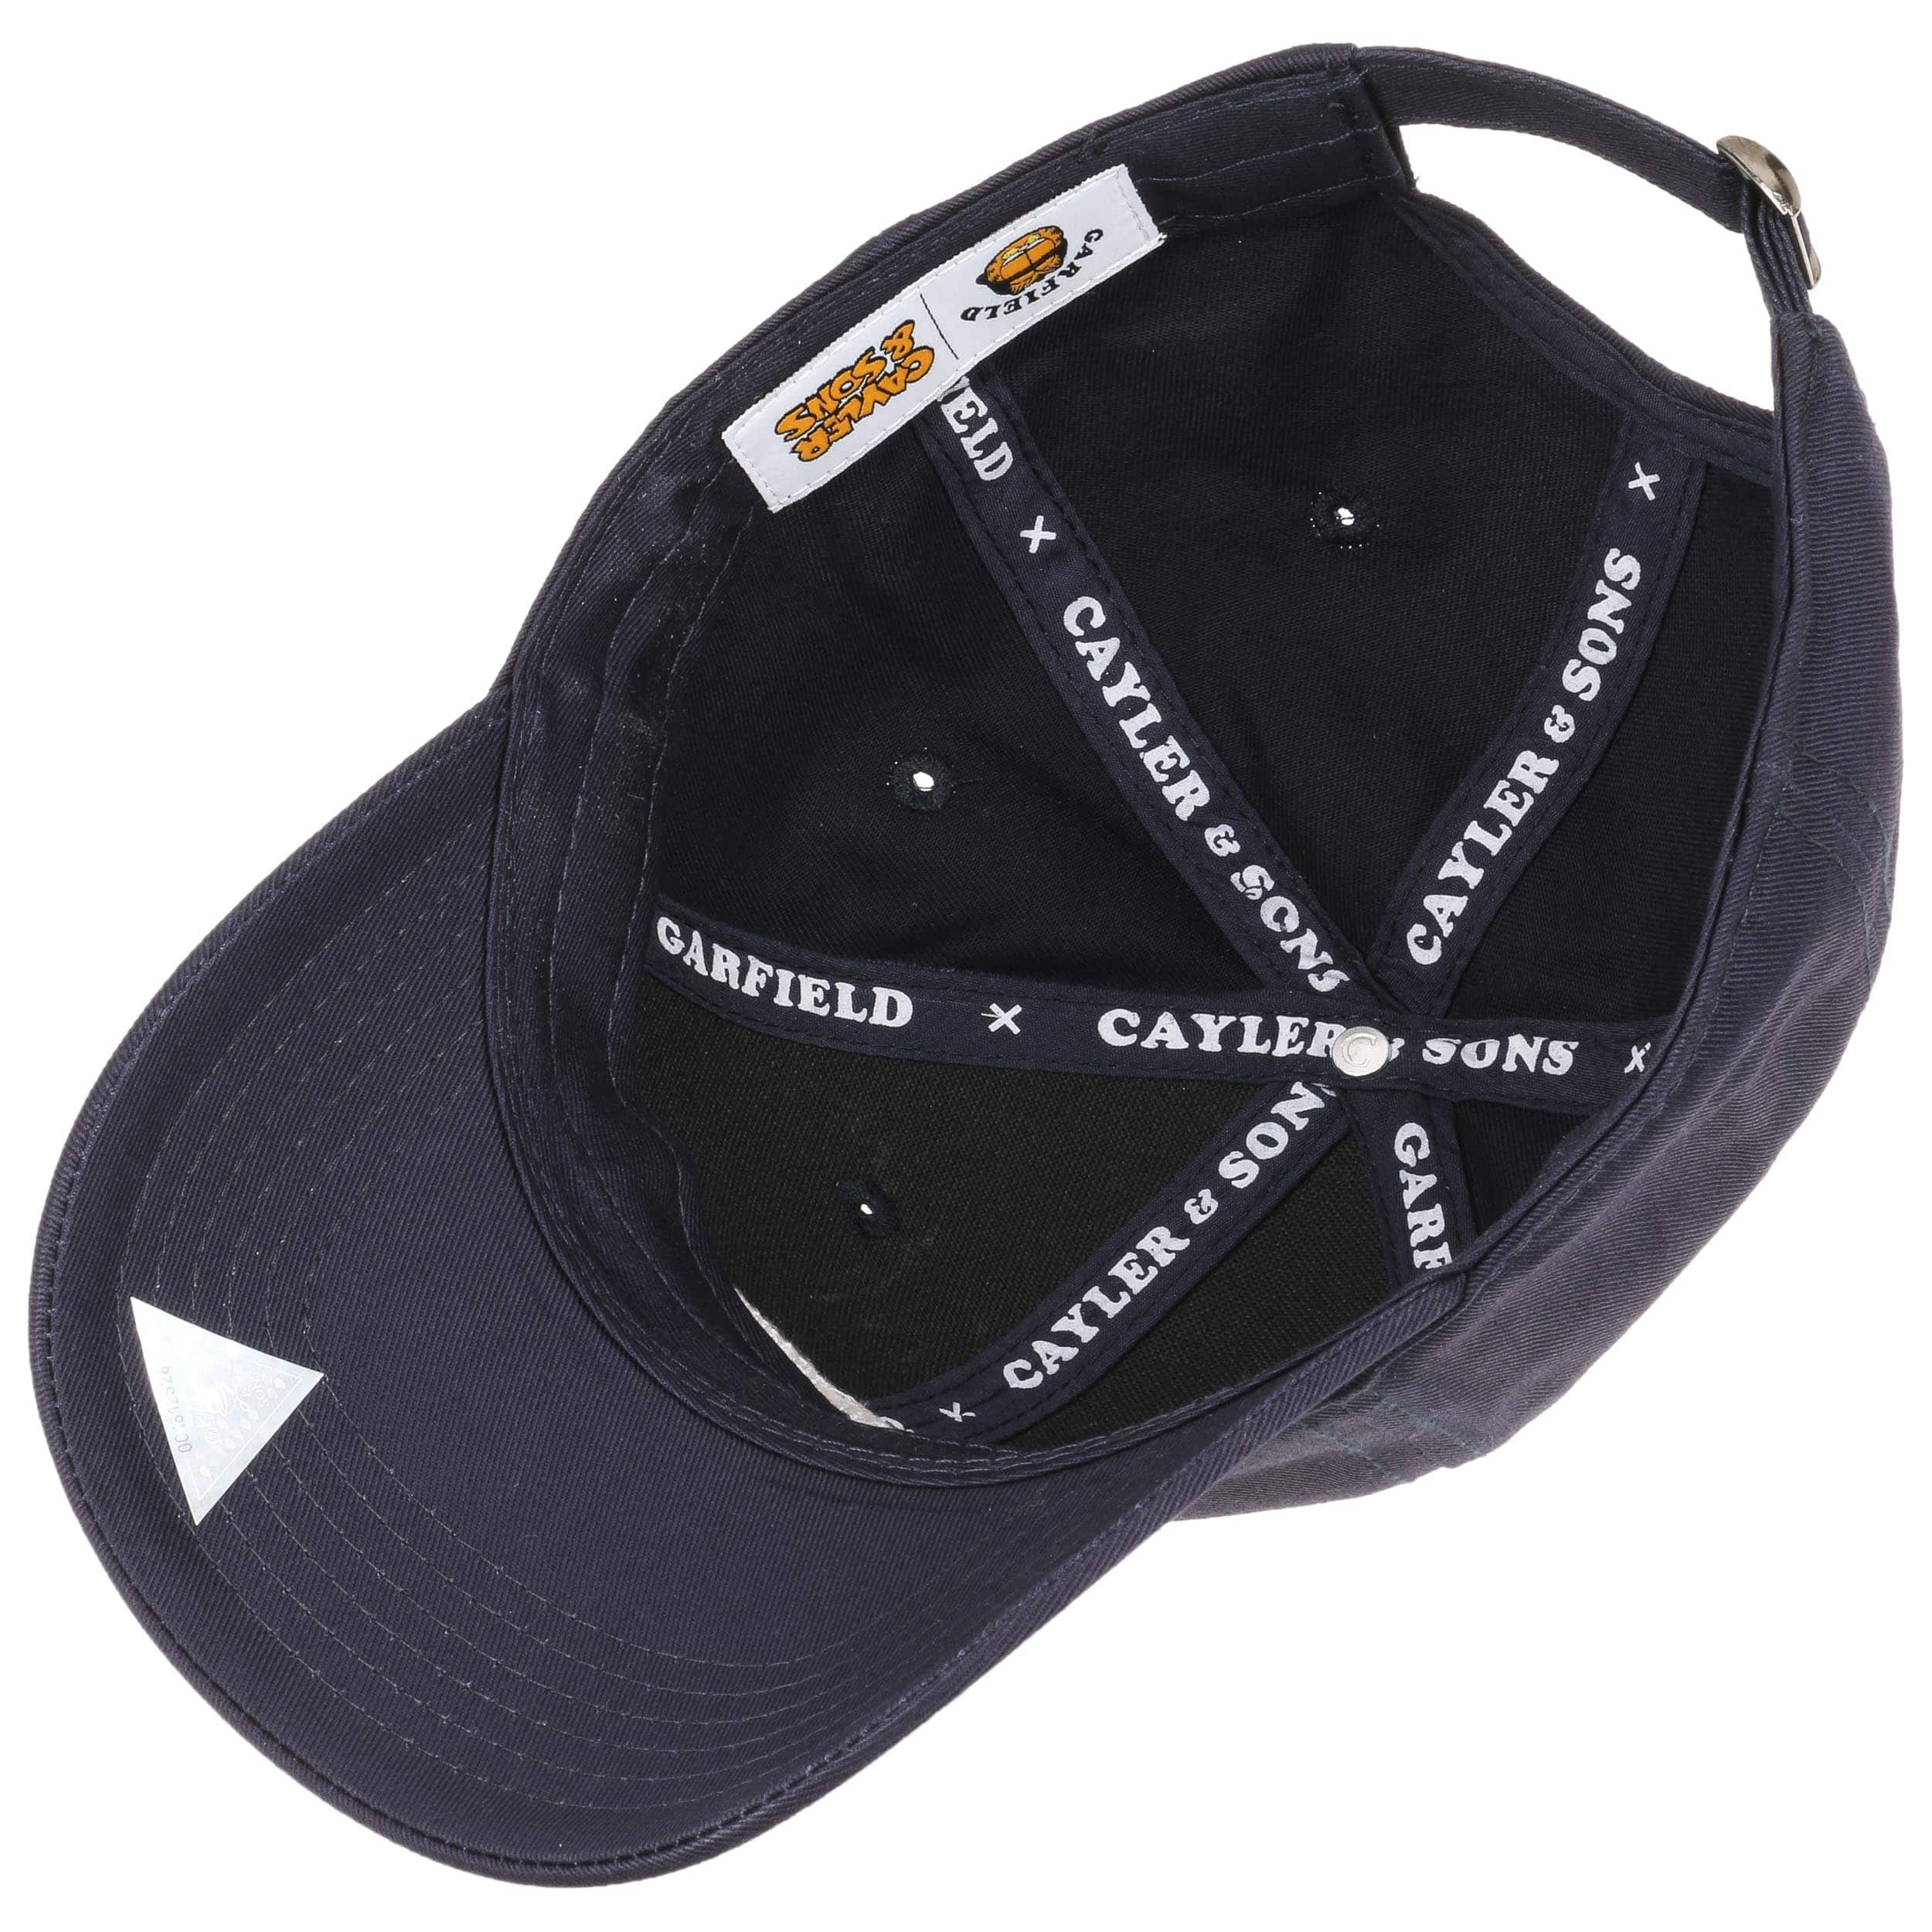 ... King Garfield Curved Cap by Cayler   Sons - navy 2 ... e43b69f3091